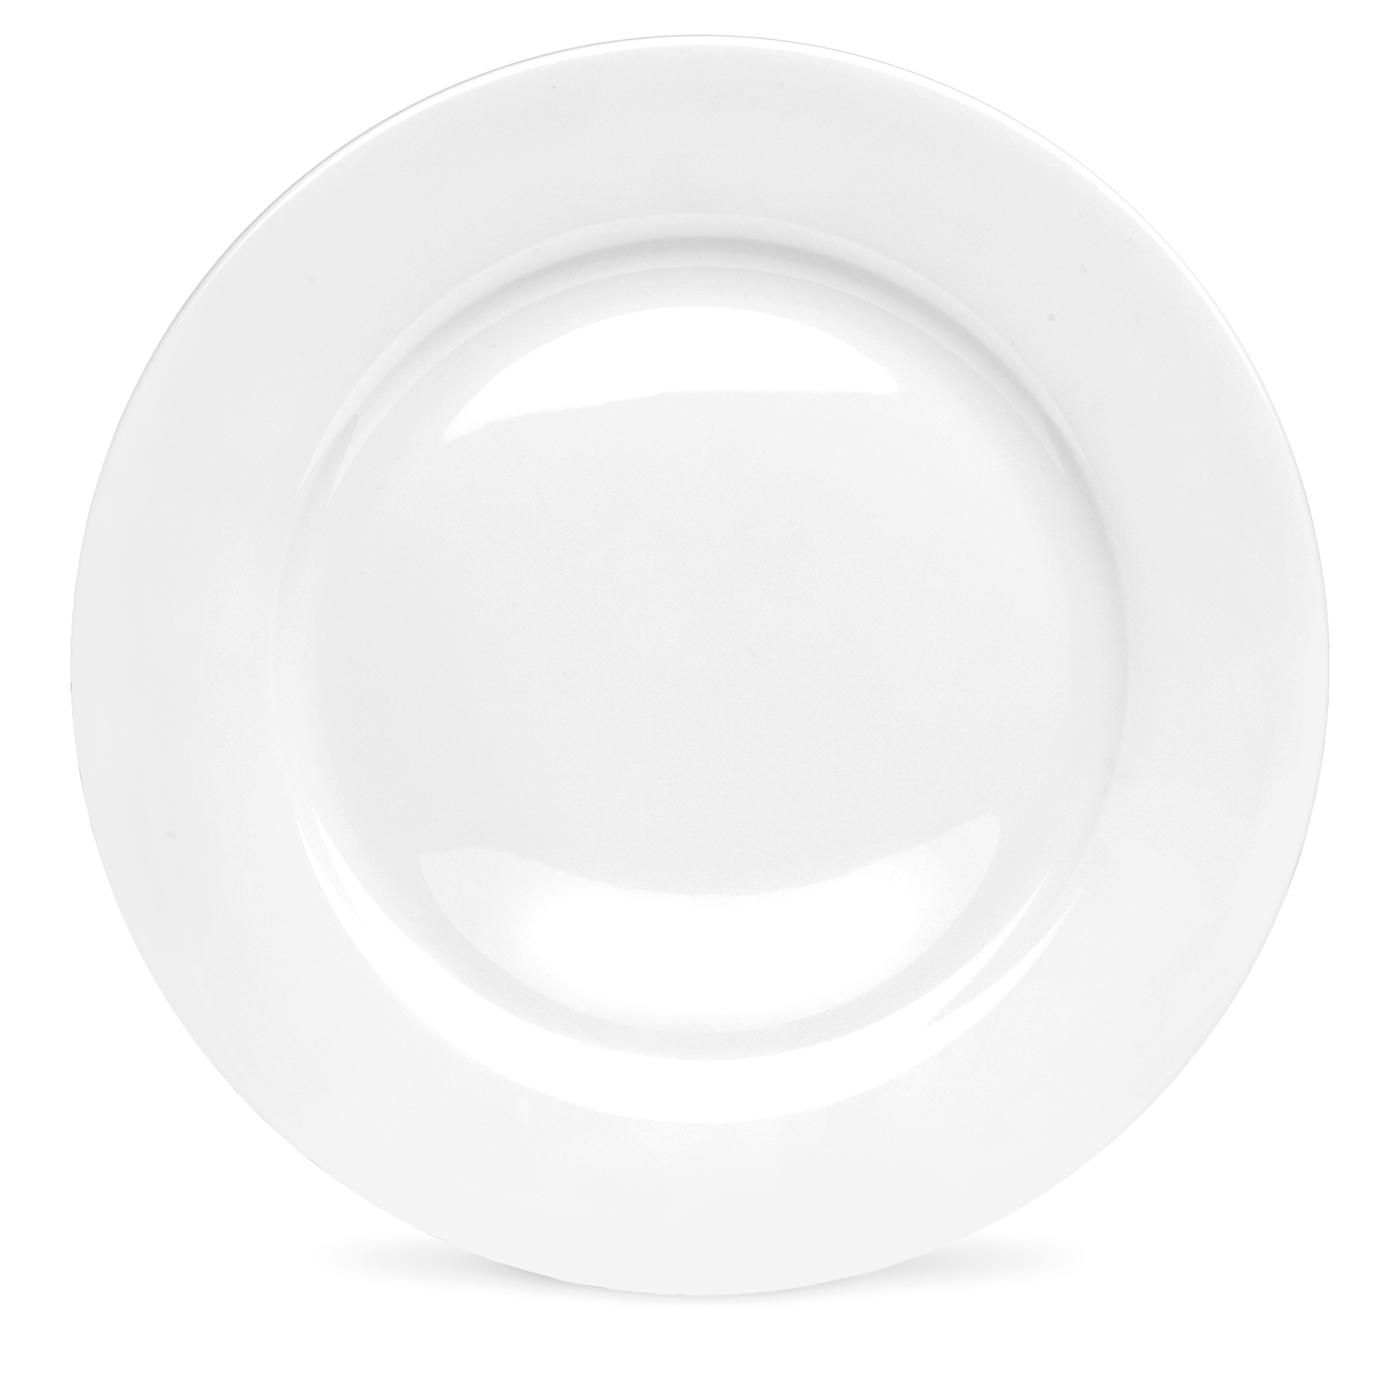 Royal Worcester Serendipity White Dinner Plate - 10.5